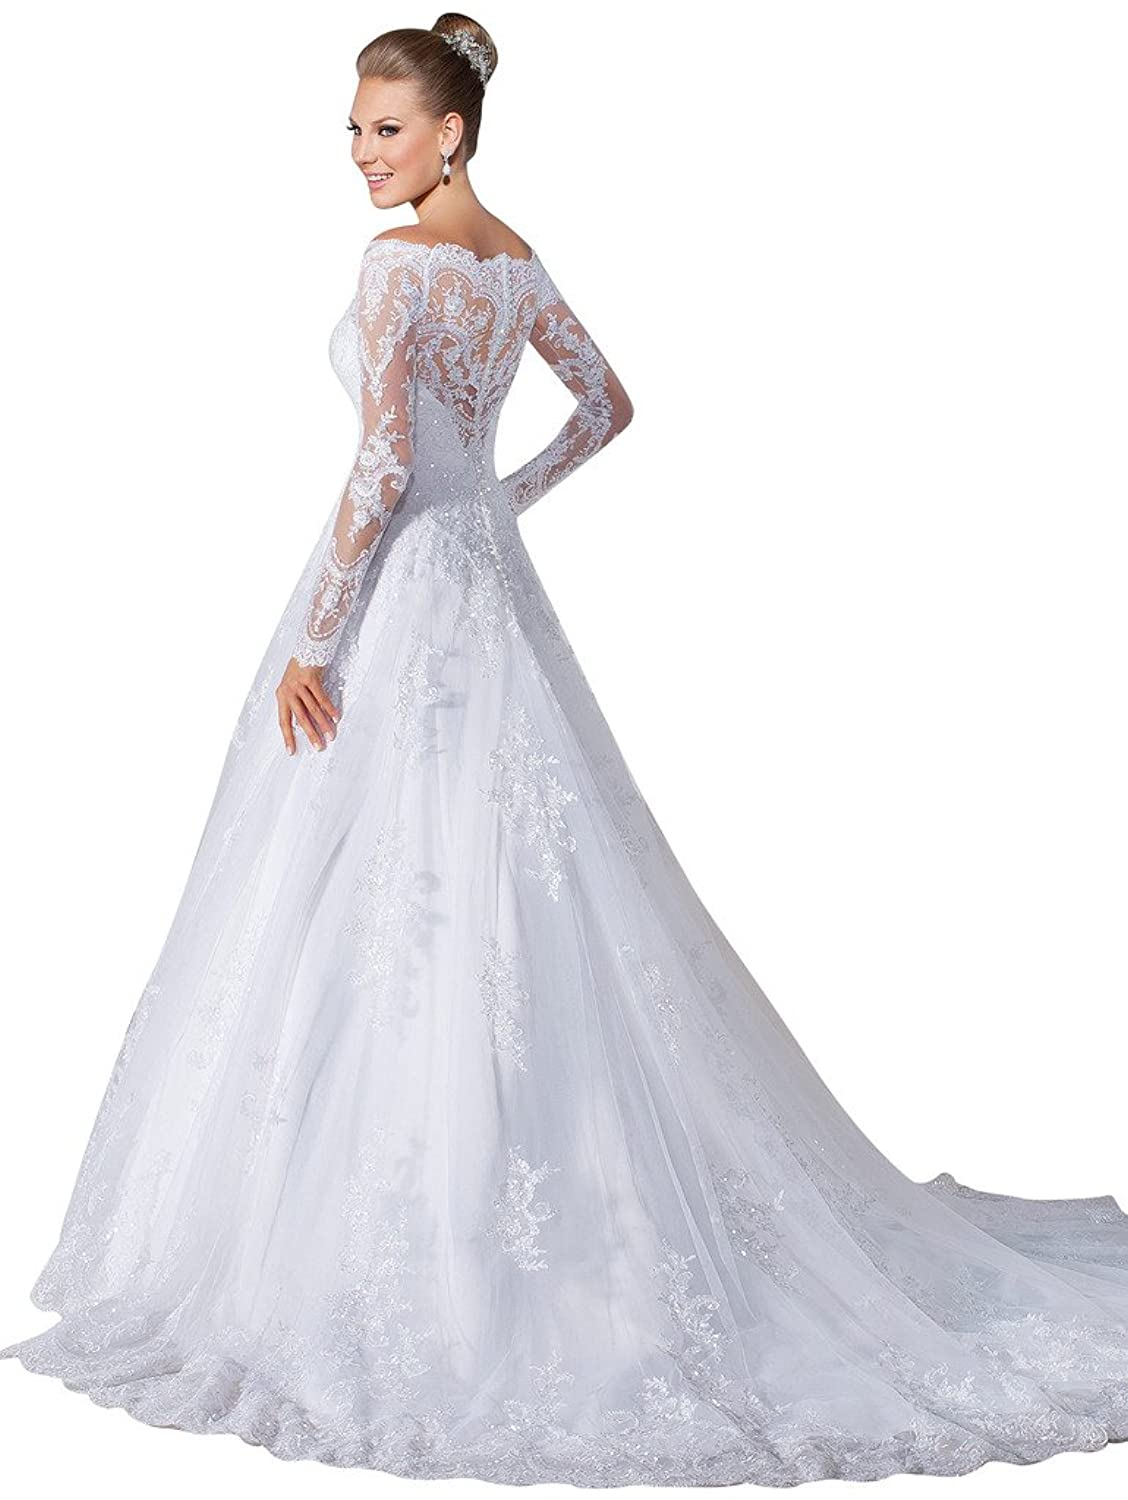 Vernassa a line bridal dresses long sleeves off the shoulder lace vernassa a line bridal dresses long sleeves off the shoulder lace wedding dresses at amazon womens clothing store ombrellifo Image collections